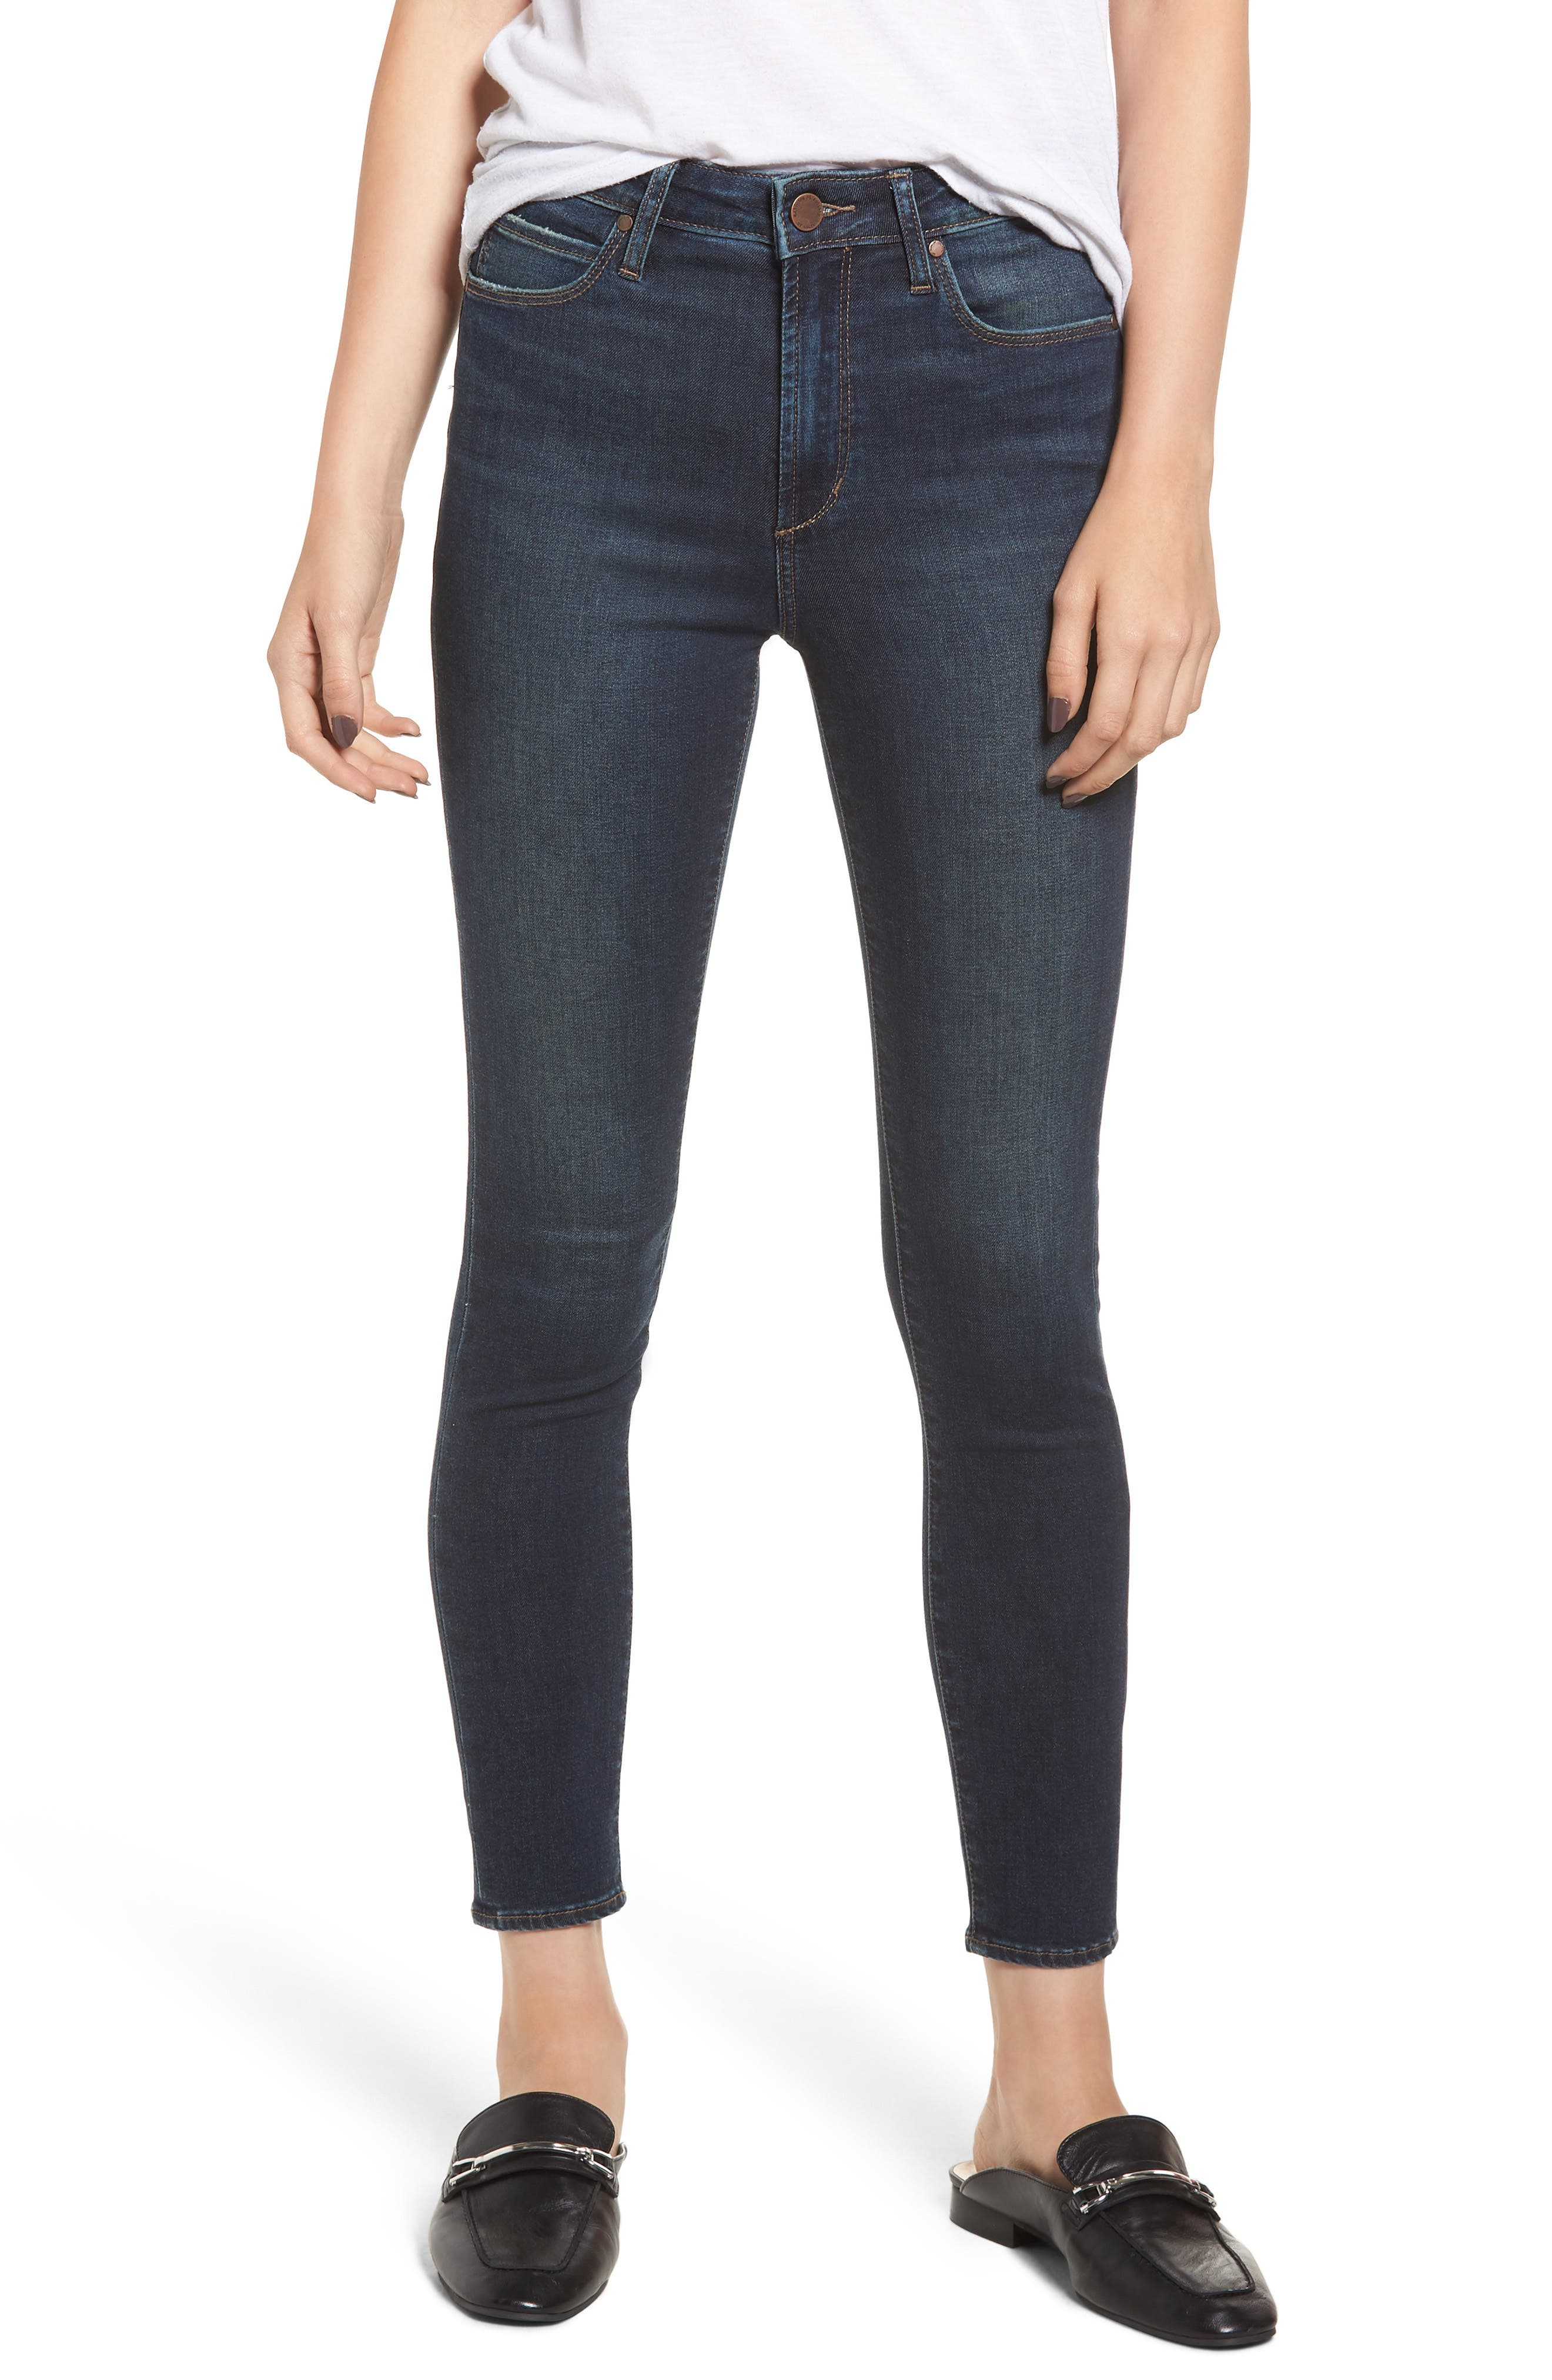 ARTICLES OF SOCIETY HEATHER HIGH WAIST ANKLE SKINNY JEANS